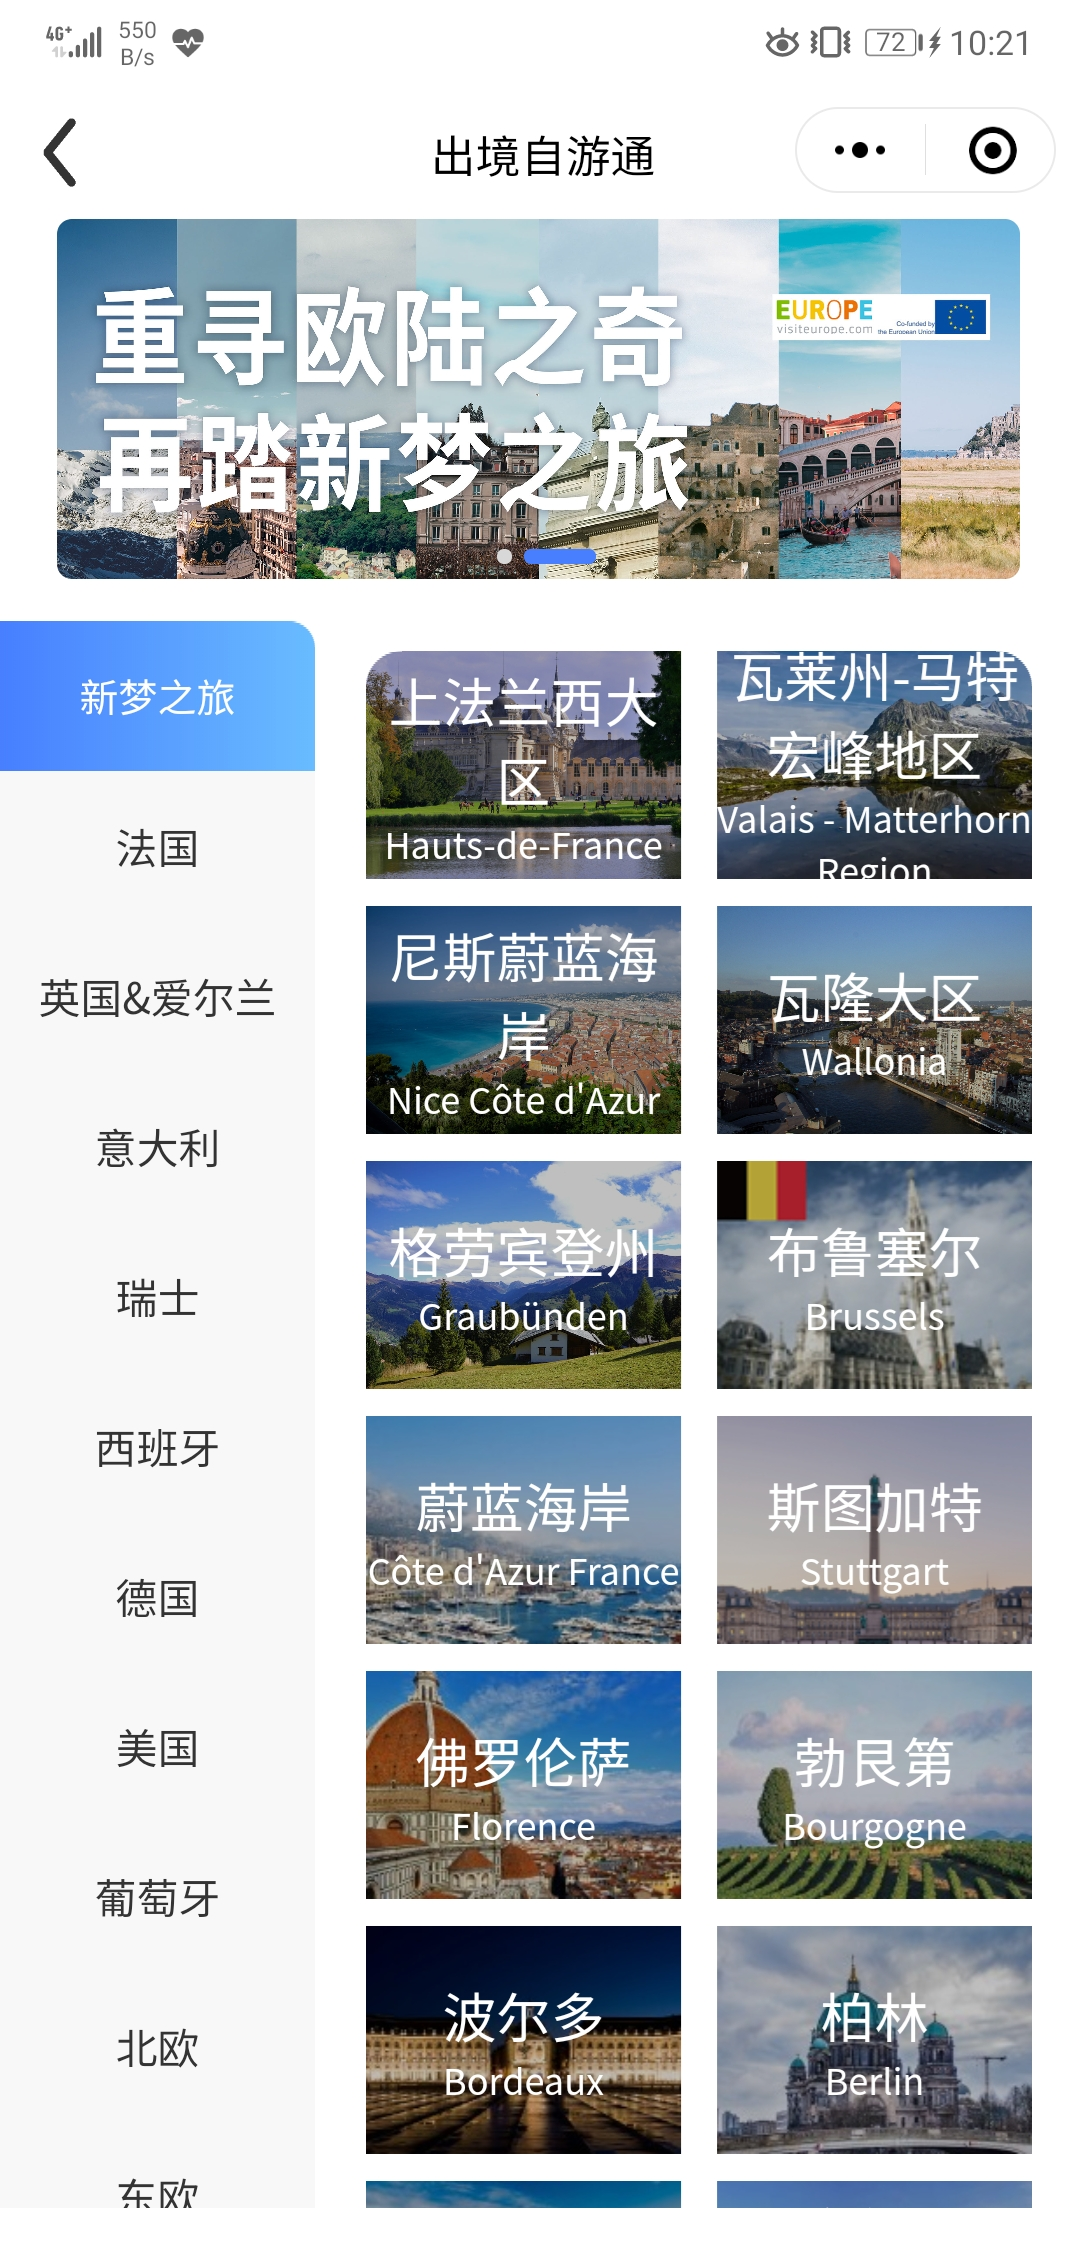 WeChat Travel Experience Mini-programme